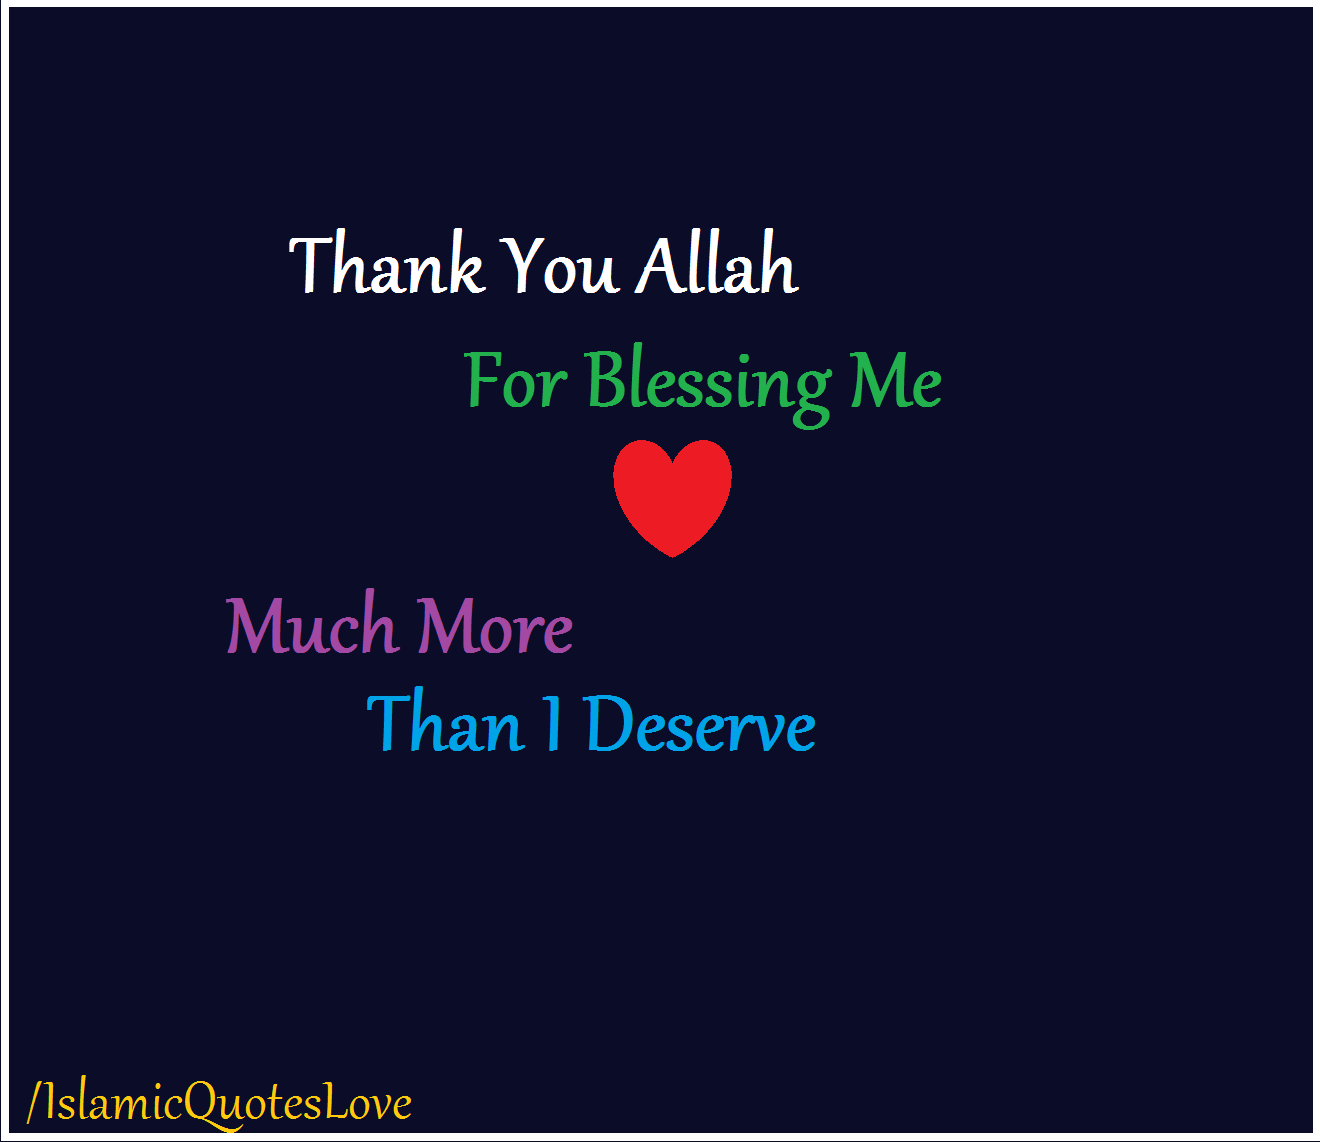 Islamic Quote Thank You Allah For Blessing Me Much More Than I